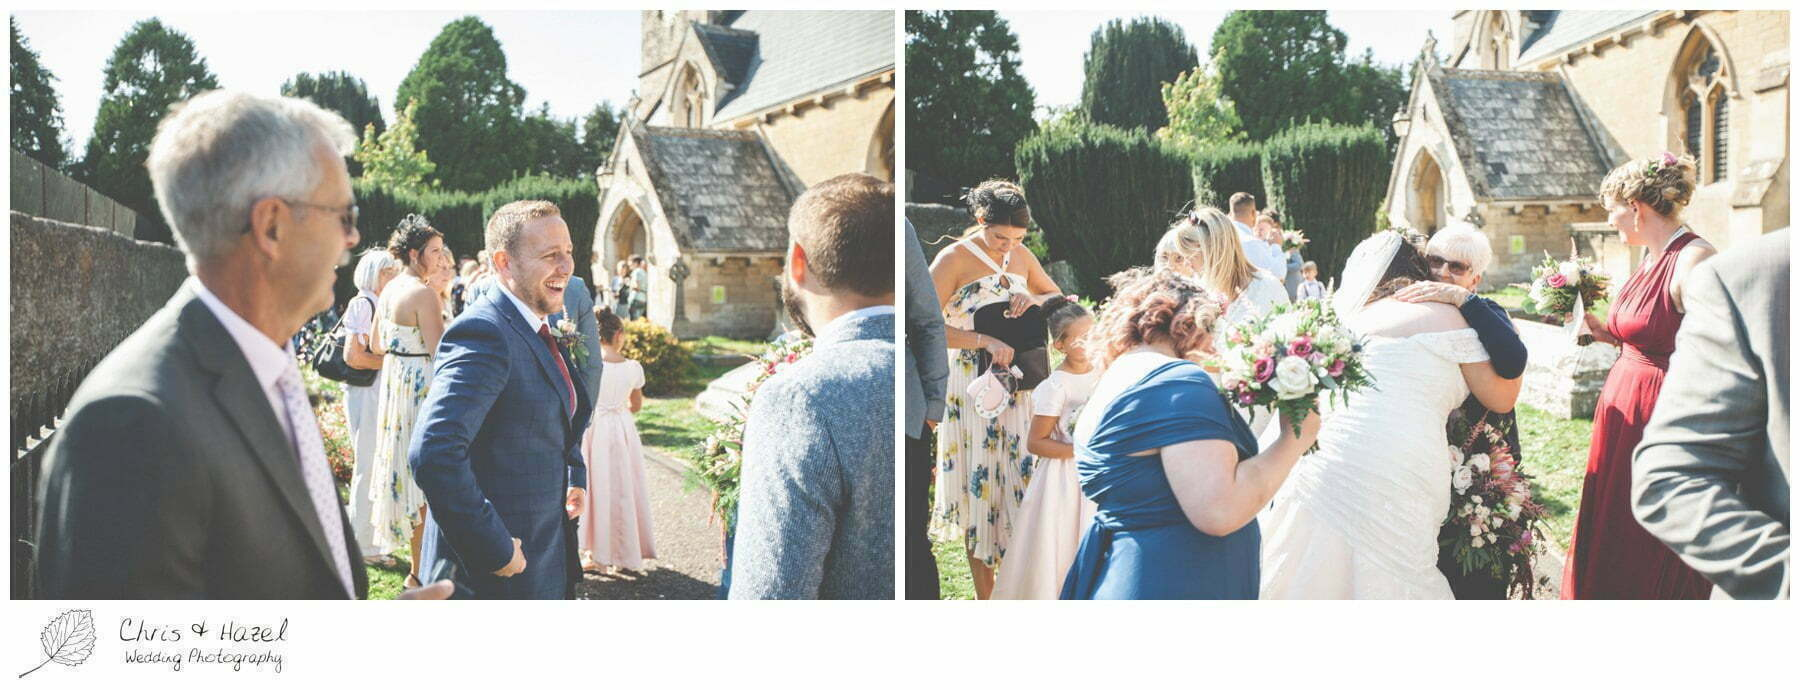 Bride and groom with wedding guests outside the church, Hilperton Church, St Michael & All Angels' Church, Wedding Photography, Wiltshire Wedding Photographer Trowbridge, Chris and Hazel Wedding Photography